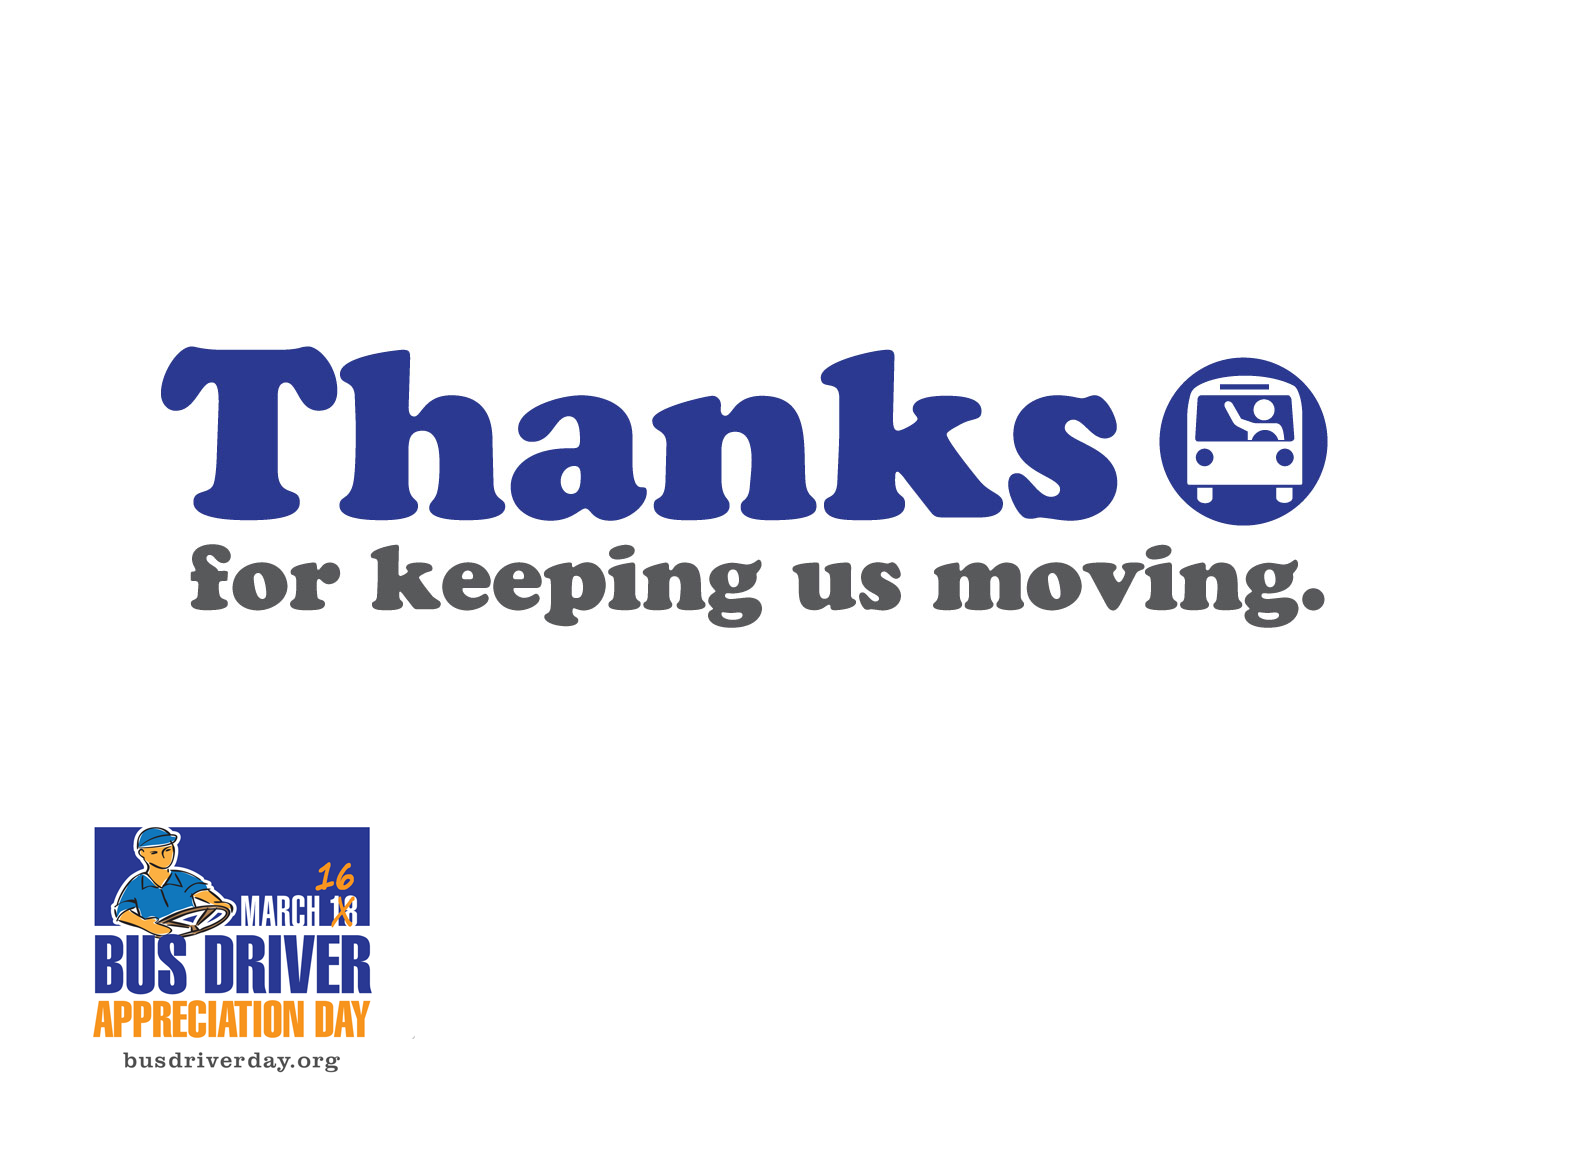 photo relating to Bus Driver Thank You Card Printable named Bus Driver Appreciation Working day is March 16, 2018